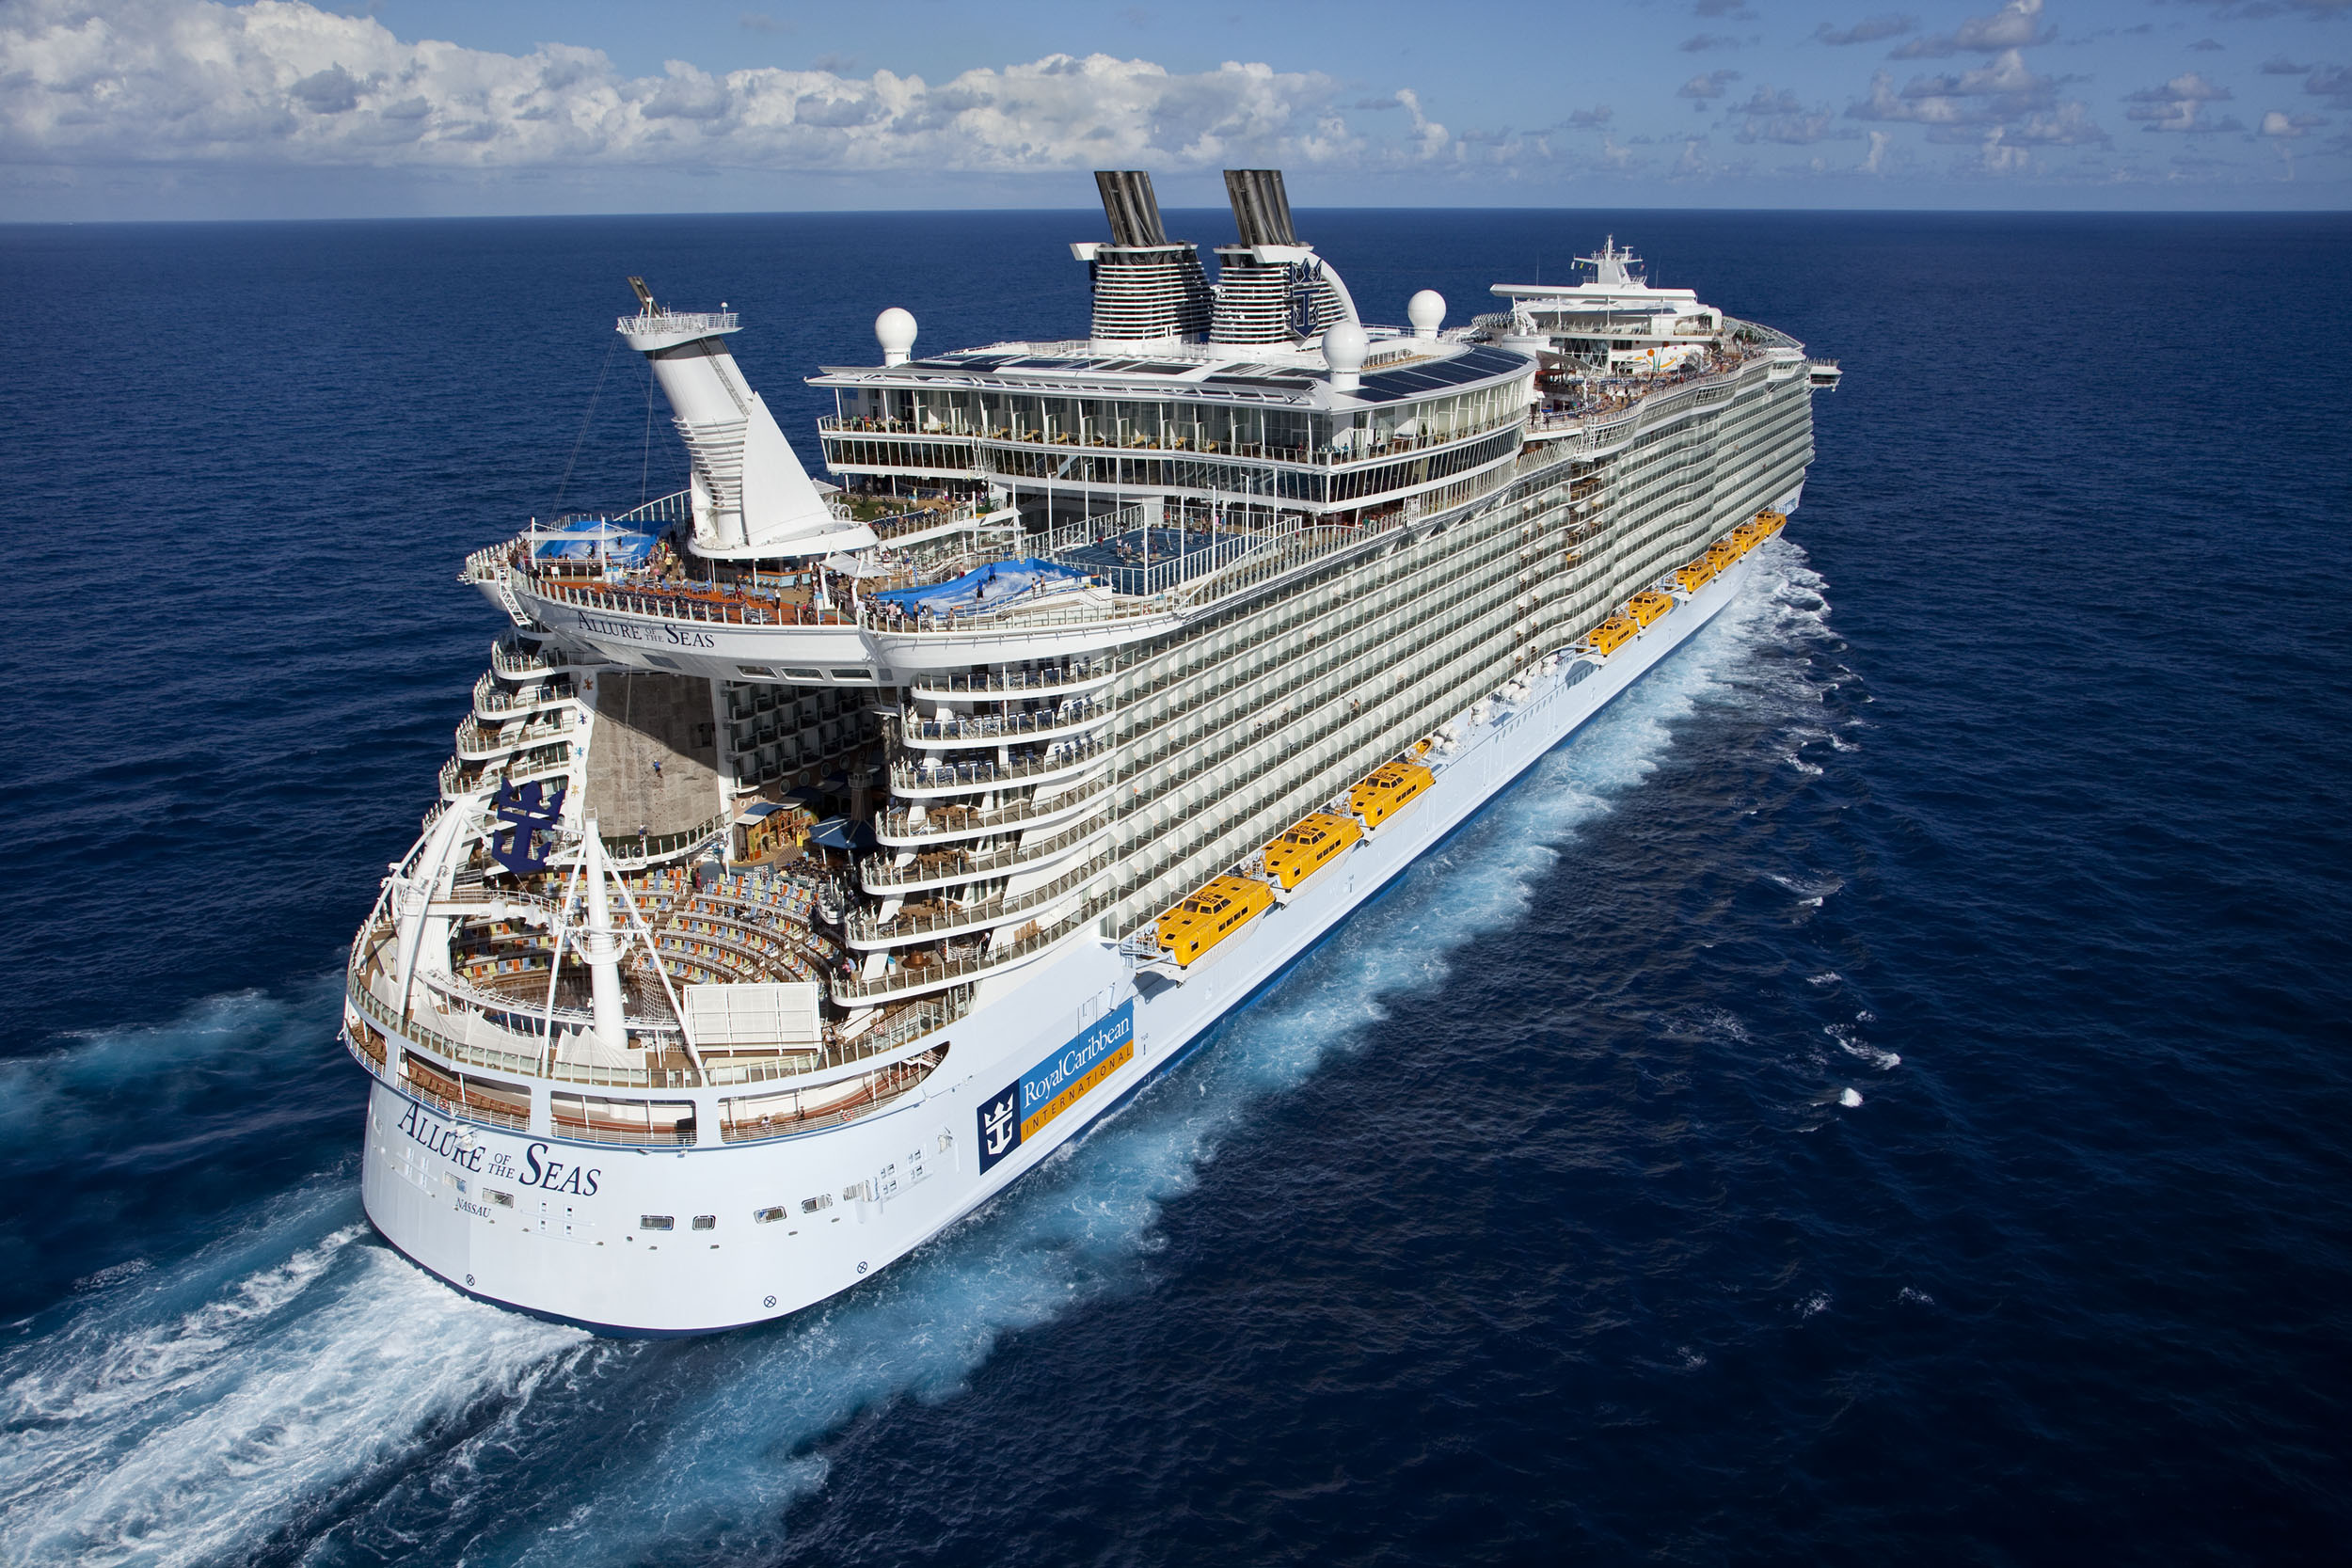 royal-caribbean-cruise-lines-looks-to-insight-to-chart-smooth-technology-onboarding.jpg